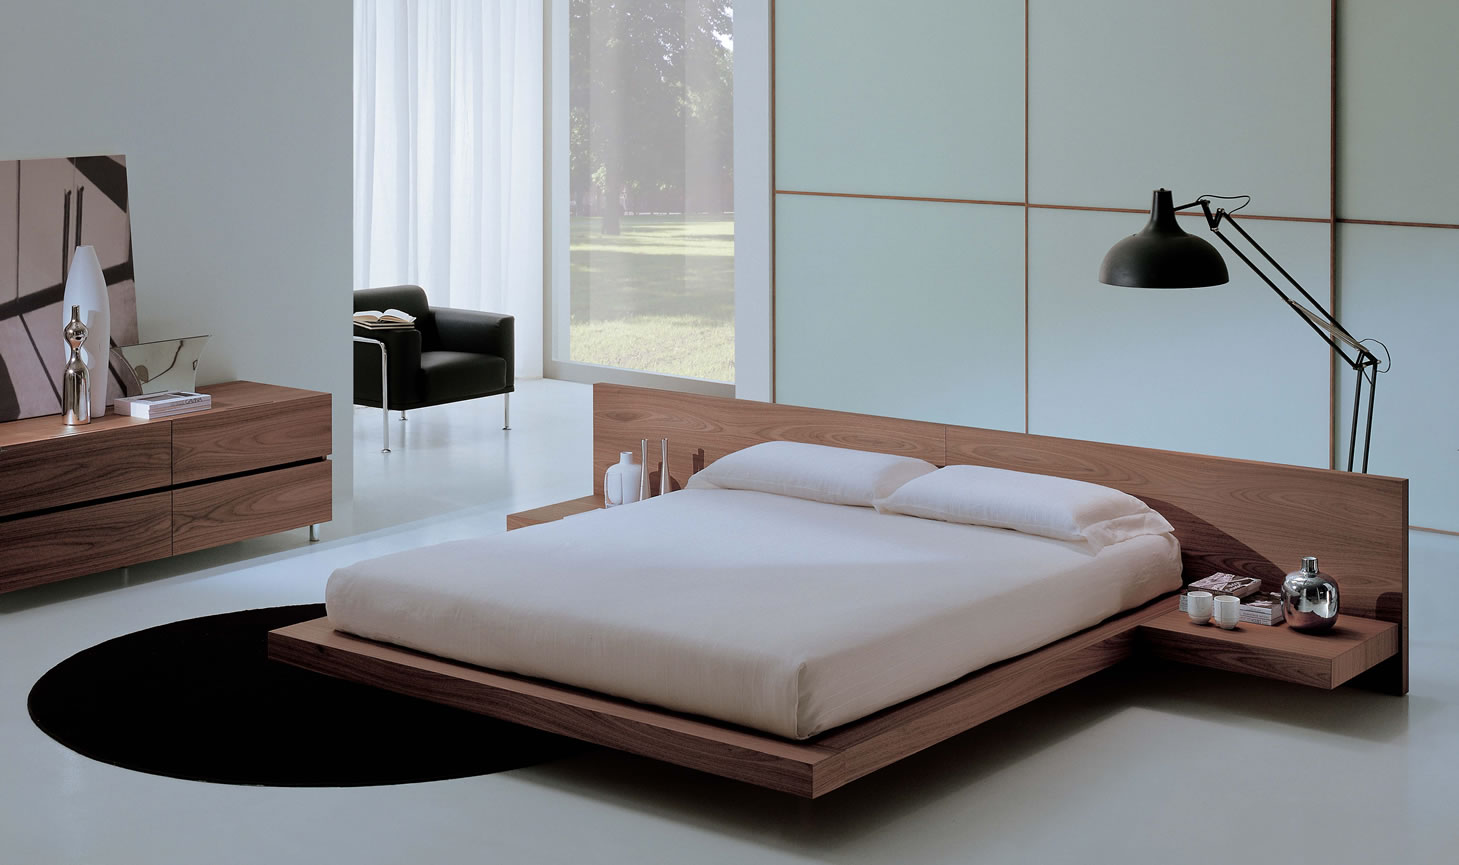 Modern bedroom furniture and plus wood bedroom furniture and plus modern bedroom cupboards and plus youth bedroom furniture